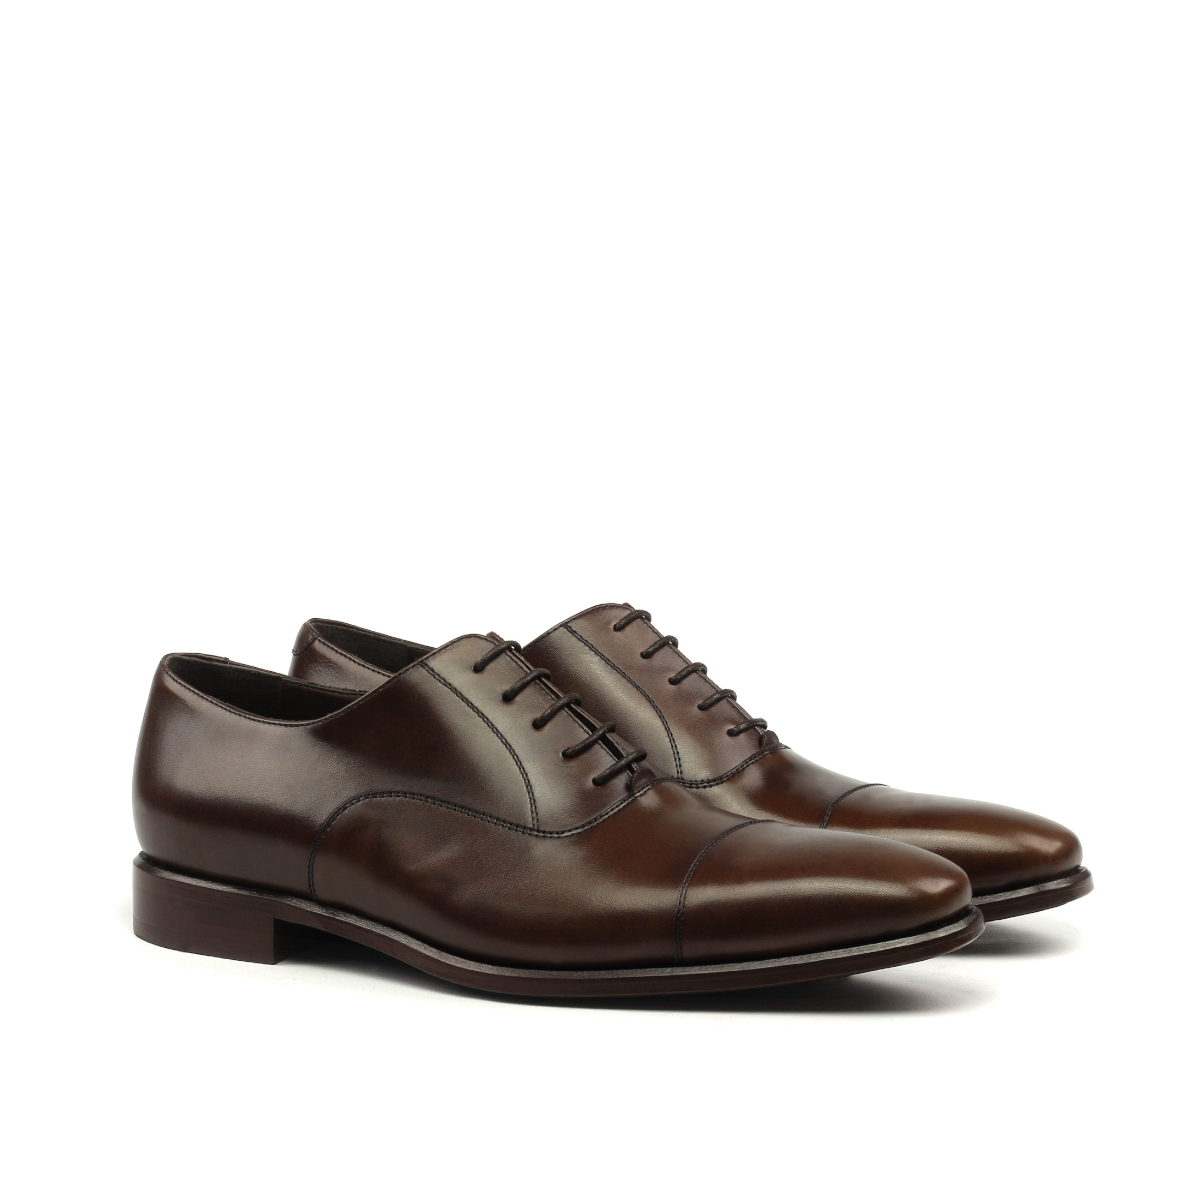 Dark brown cap toe Oxford